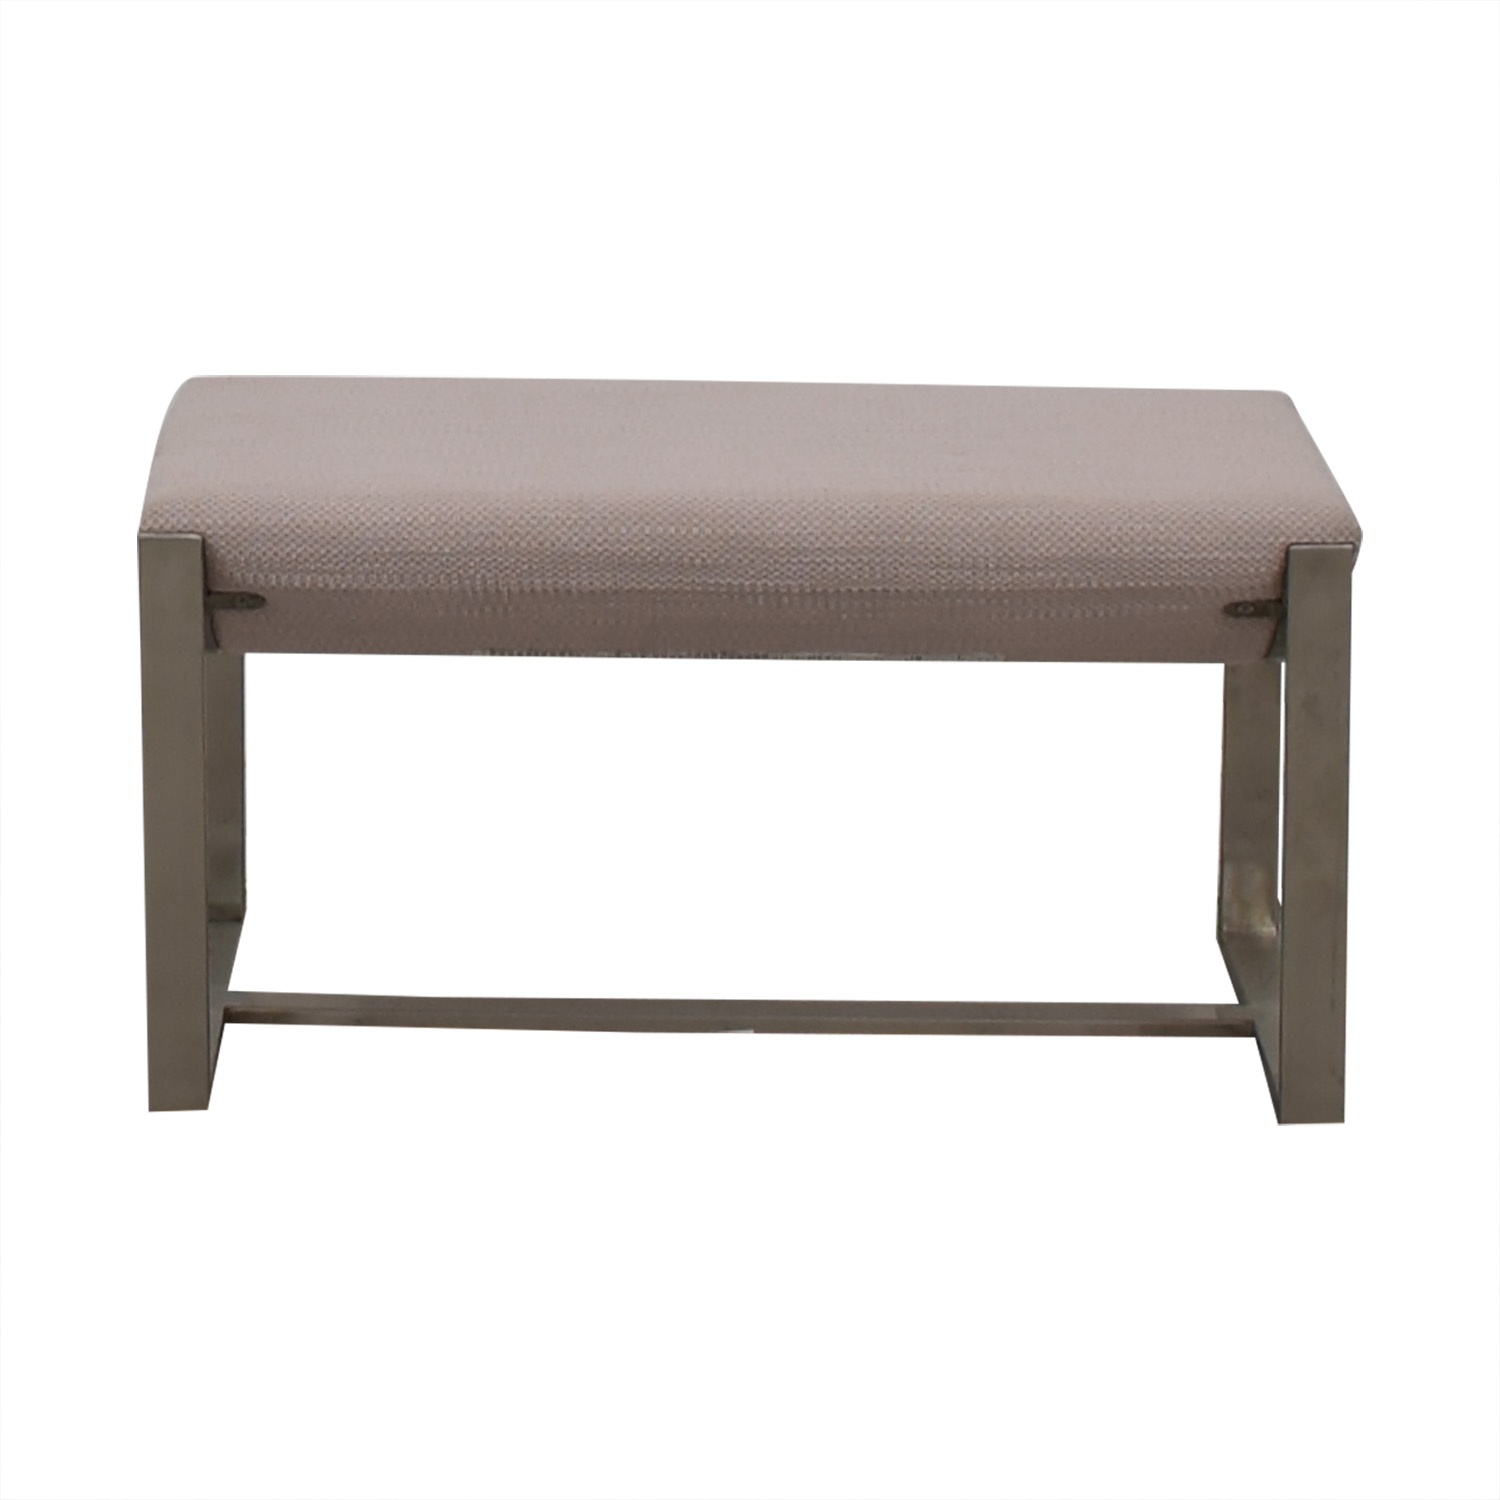 shop West Elm West Elm Grey Bench online